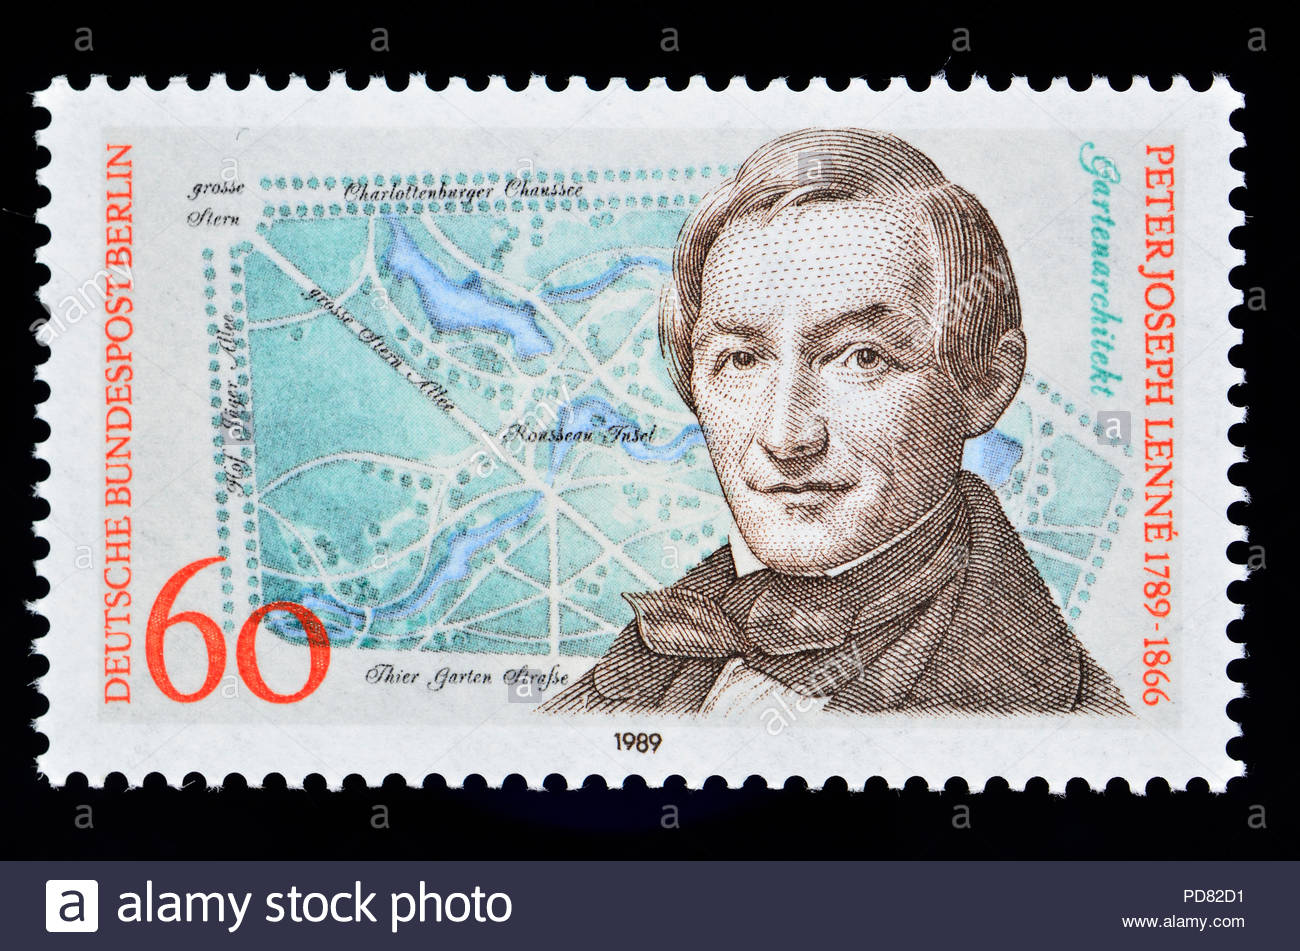 german postage stamp berlin 1989 peter joseph lenn the younger 1789 1866 prussian gardener and landscape architect PD82D1